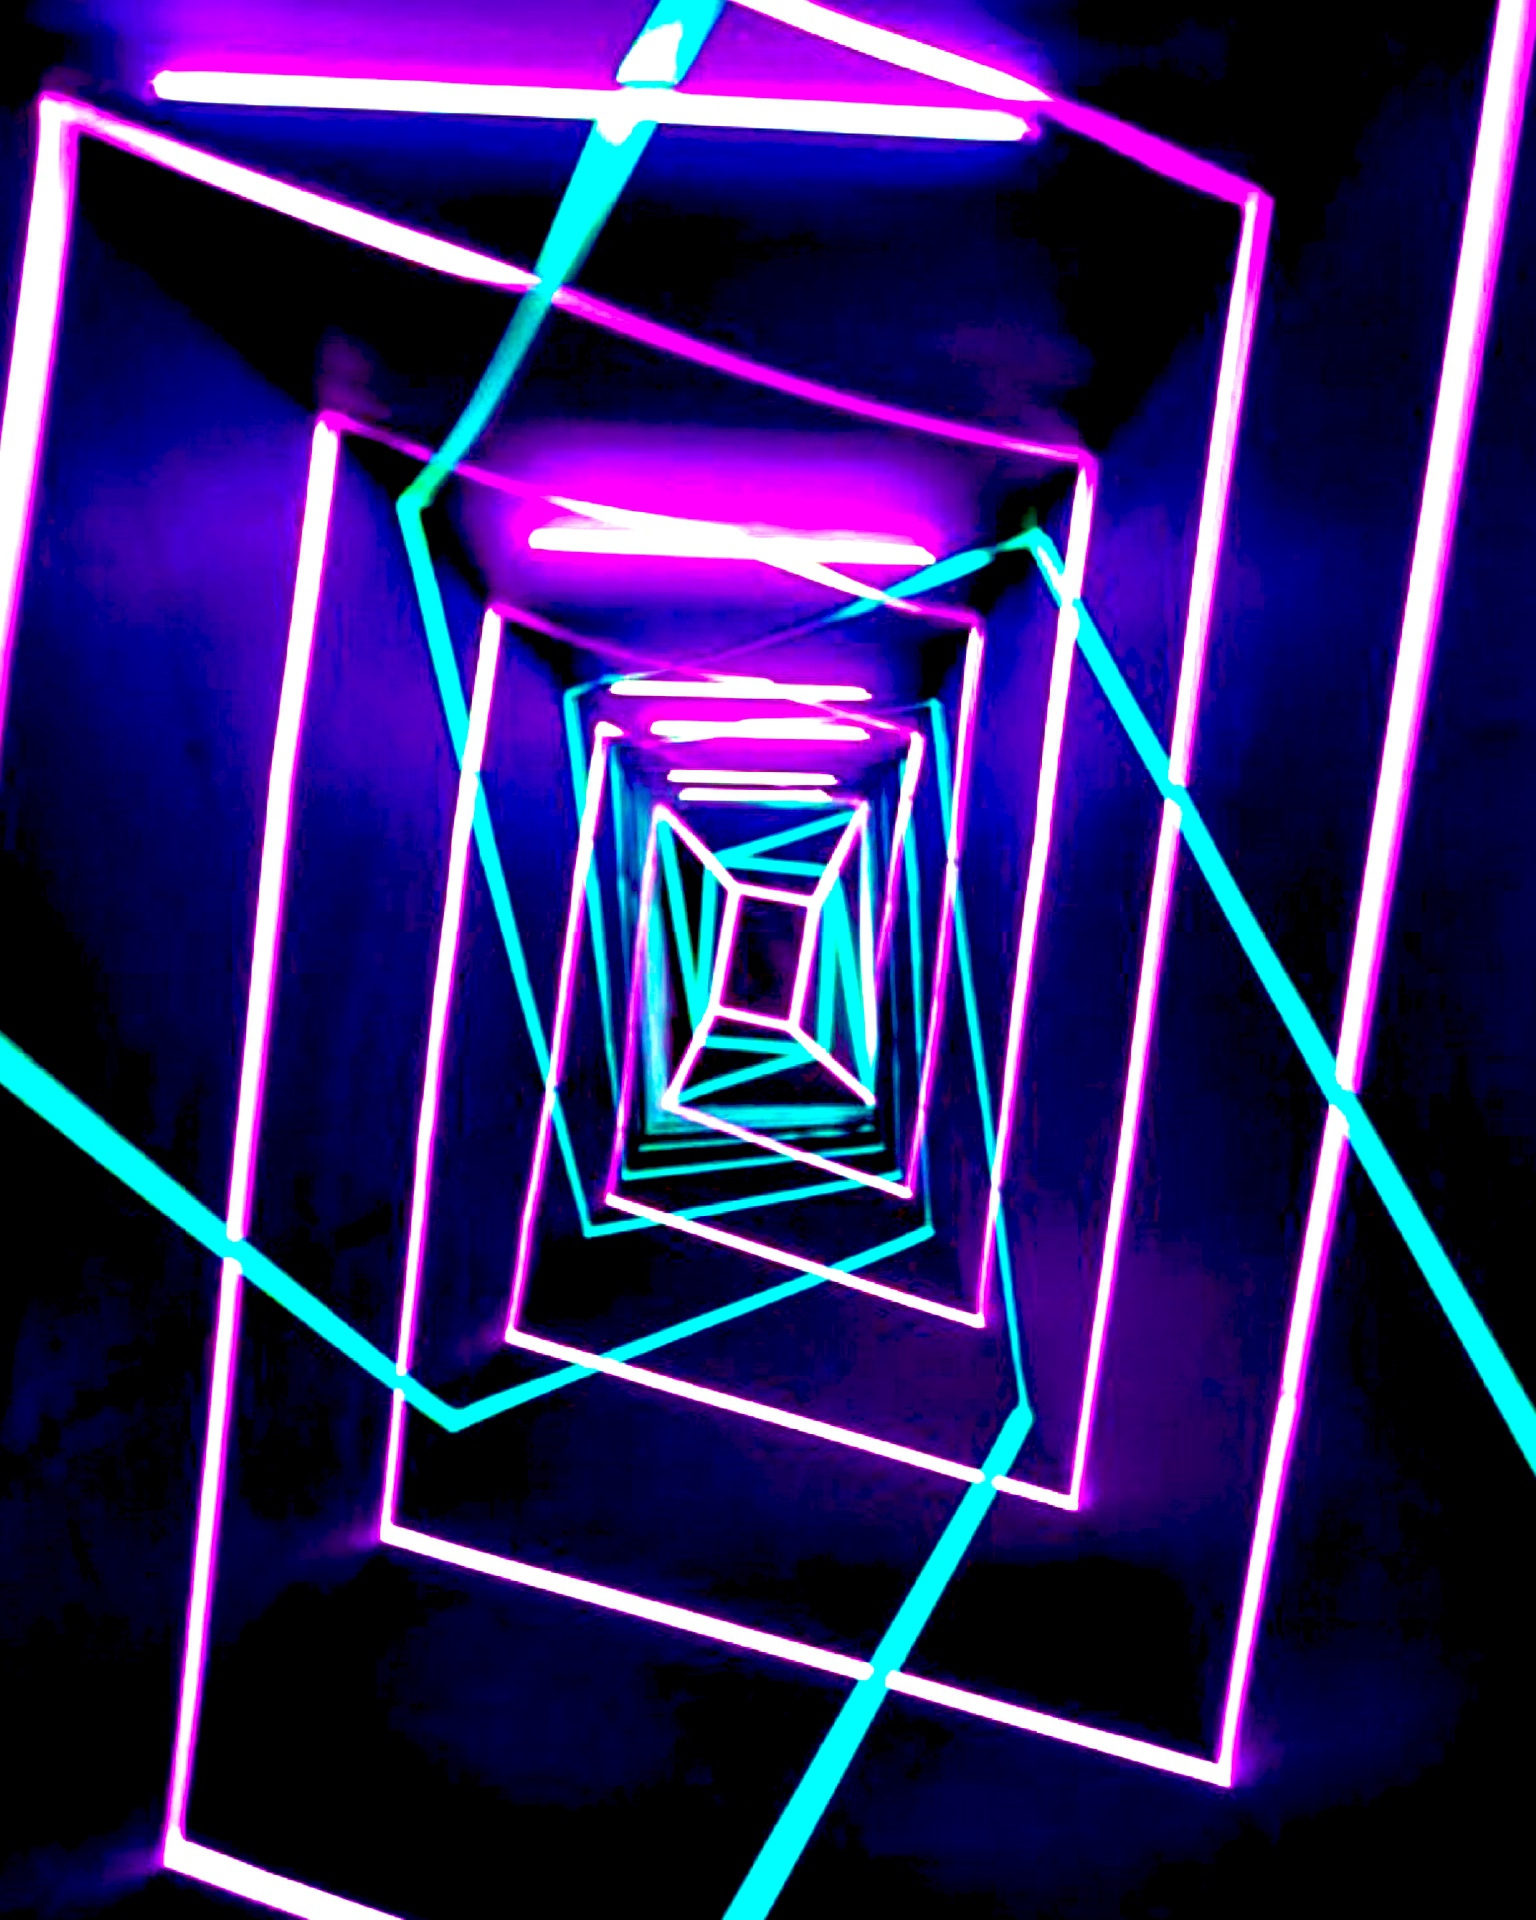 Neon Tunnel (2017) by Kitsch Nitsch - Pako Campo